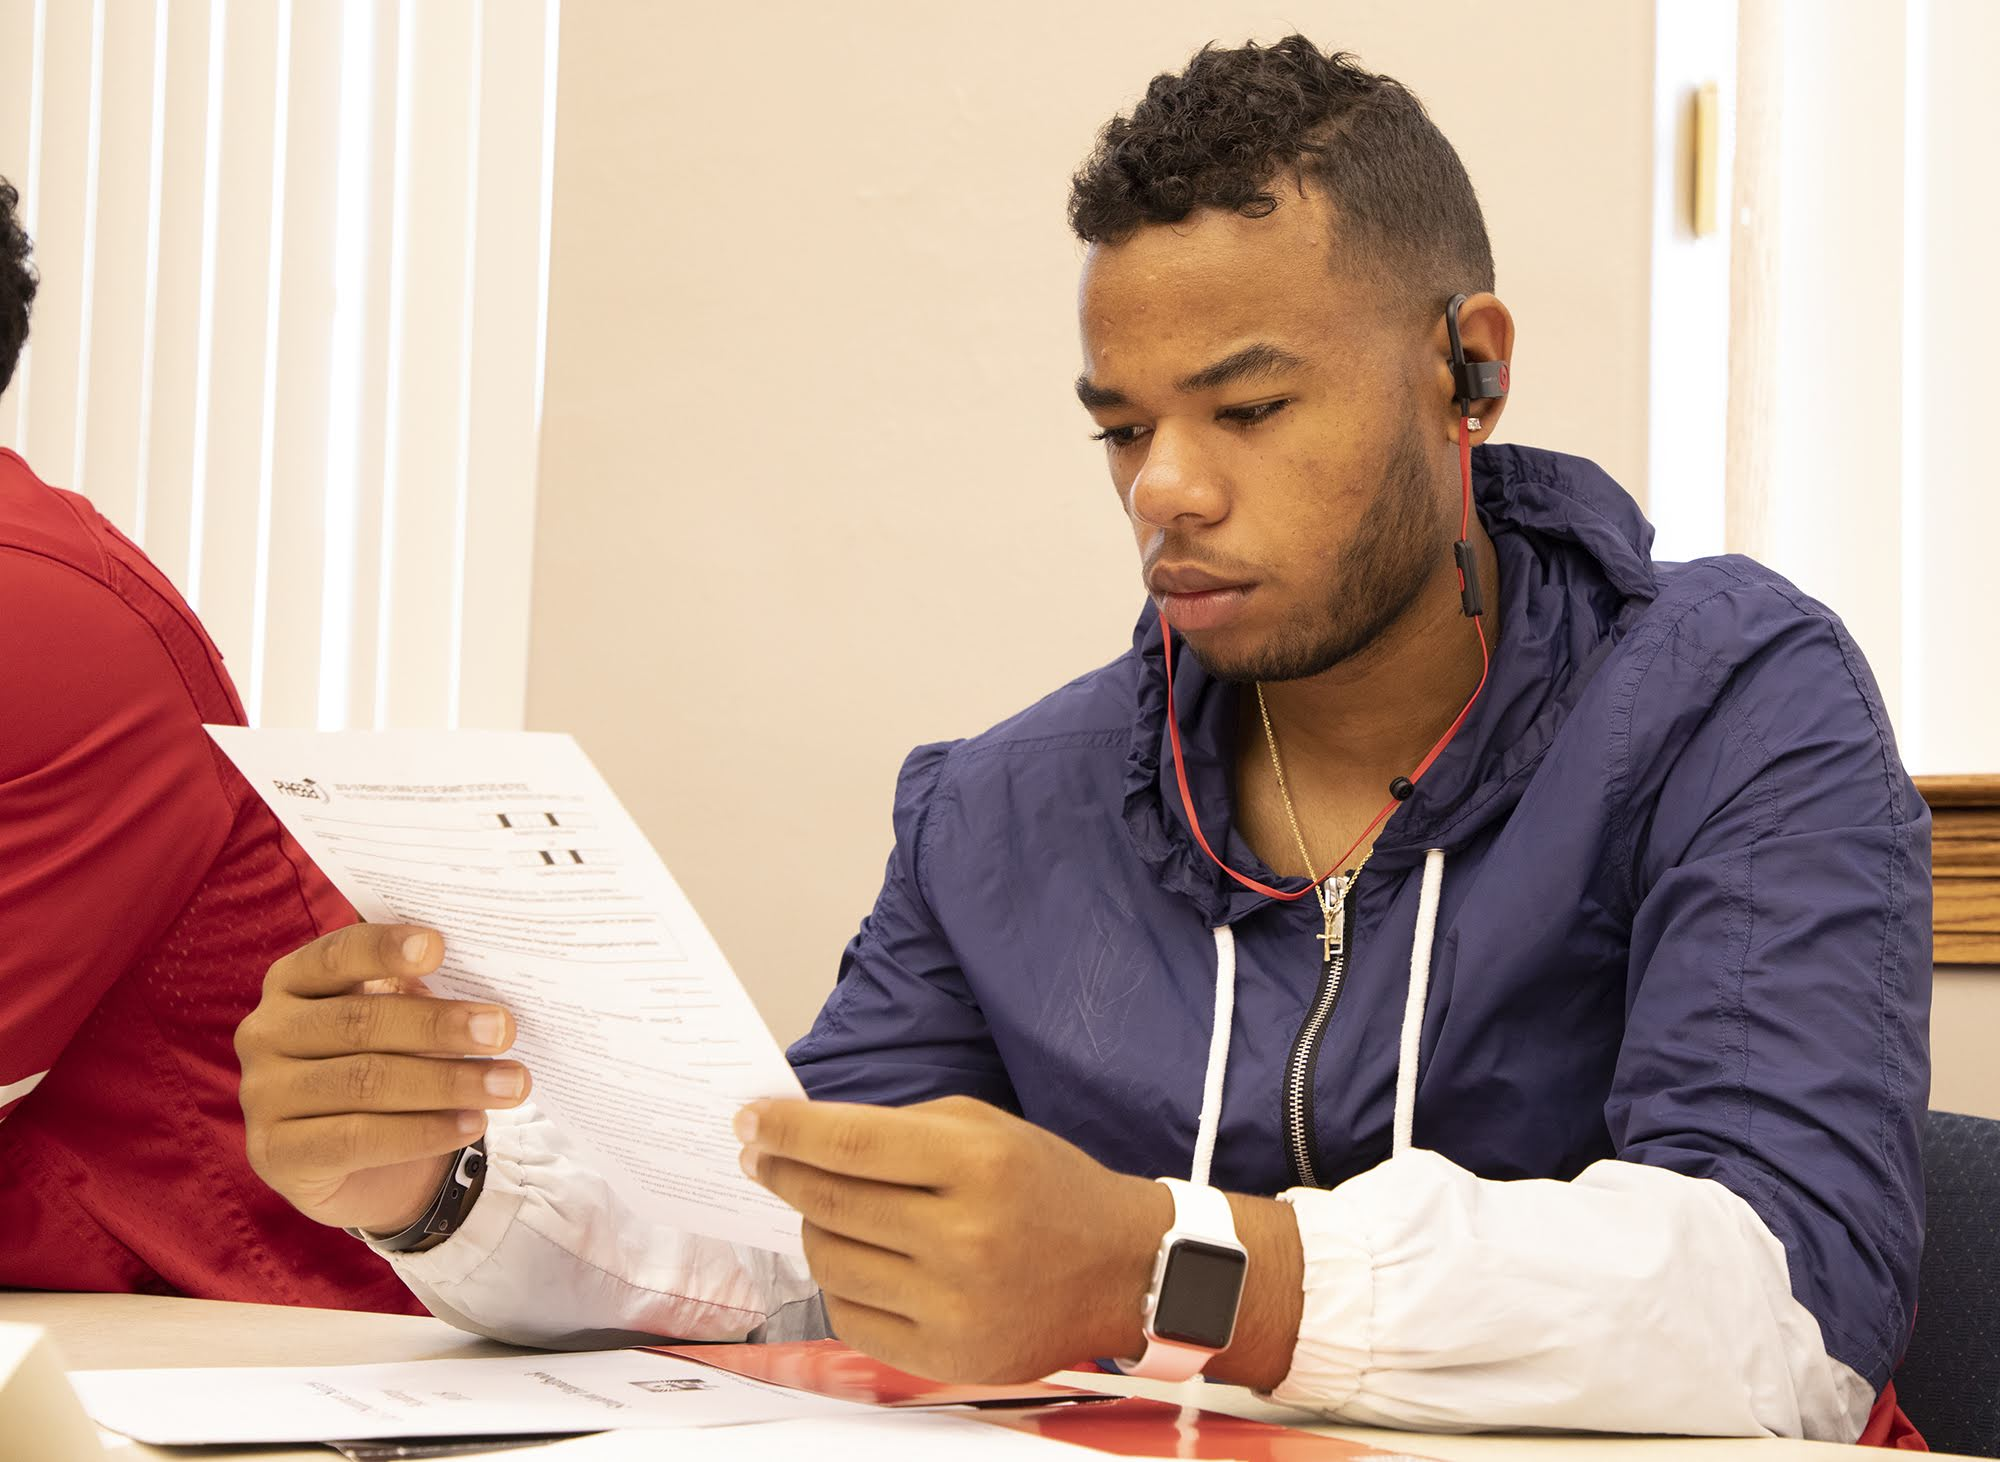 Brycen Simpson, 20, of New Kensington, looks over paperwork from the Pennsylvania Higher Education Assistance Agency during the Summer Success Academy at California University of Pennsylvania on Aug. 14, 2018.